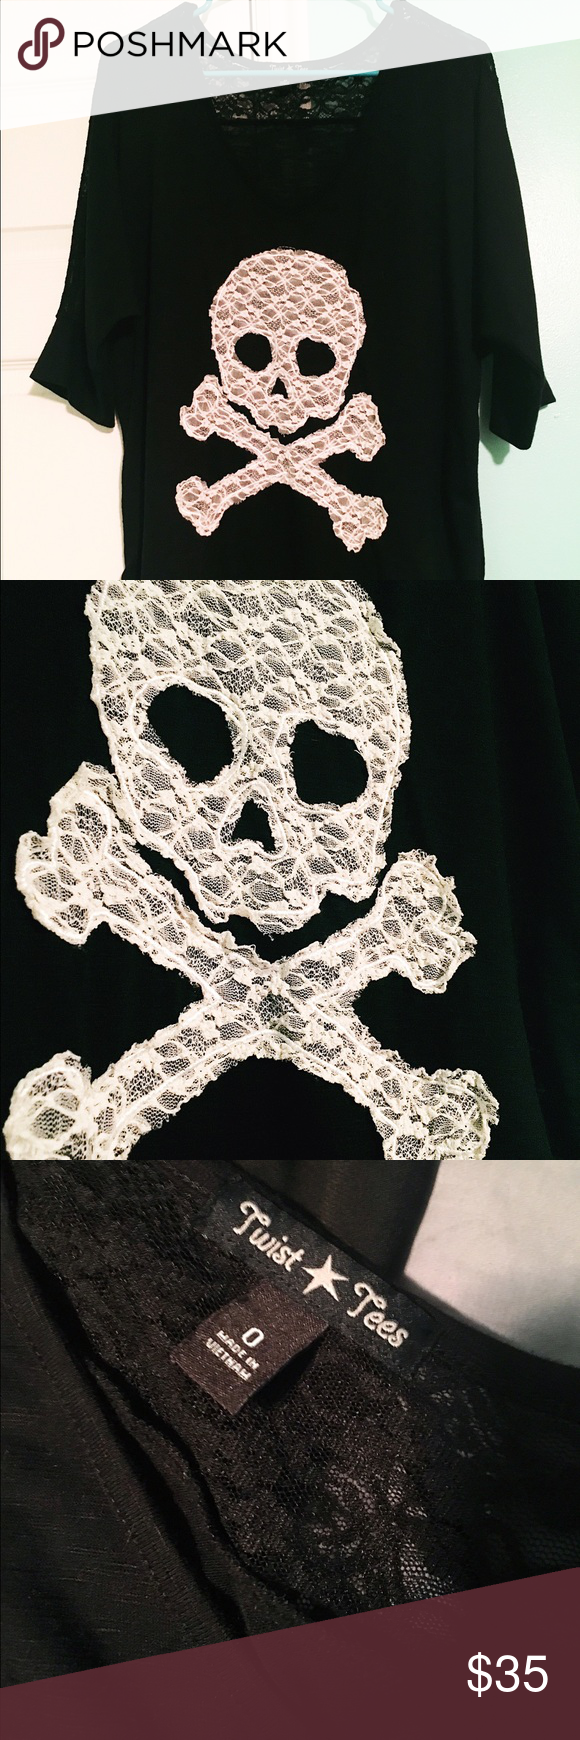 """Twist Tees Lace Skull Knit Shirt Brand new (without tags) and never worn but so so cute. Ordered online and it was too small so it fell victim to the """"I'll save this for when I lose weight mentality"""" but now my closet needs a de-stash and I'm selling this cute cute shirt. Lace on upper back, half sleeve, purchased at Torrid. Torrid size 0-like a Large or a 12ish-but this fits a little bigger so a 14 could probably wear it comfortably or a 16 snugly. Original retail $42.50 Twist Tees Tops…"""